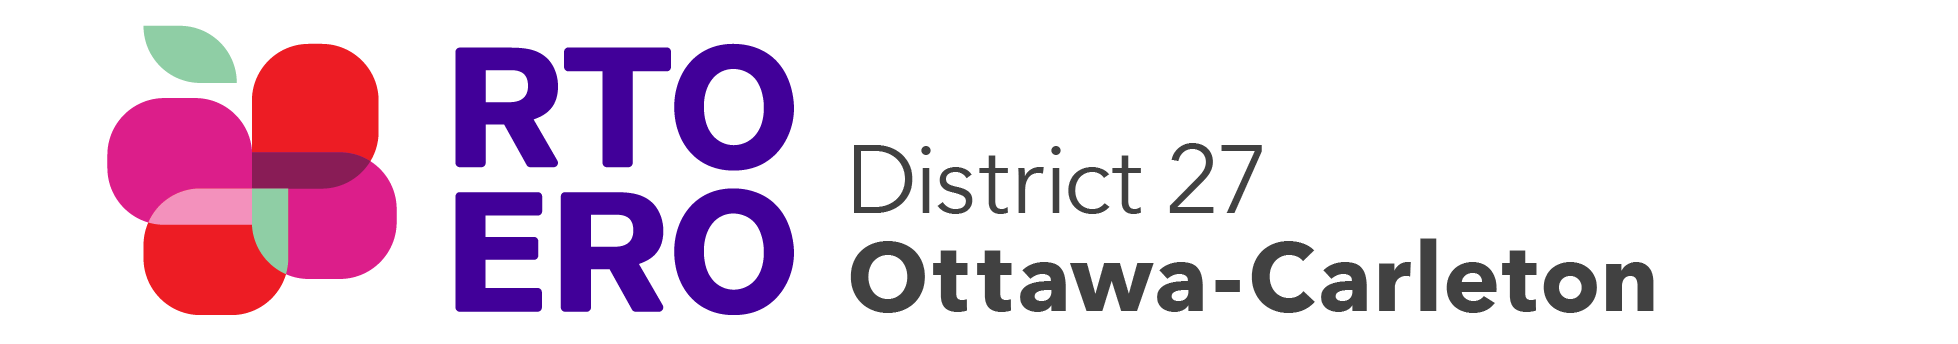 RTO/ERO District 27, Ottawa-Carleton